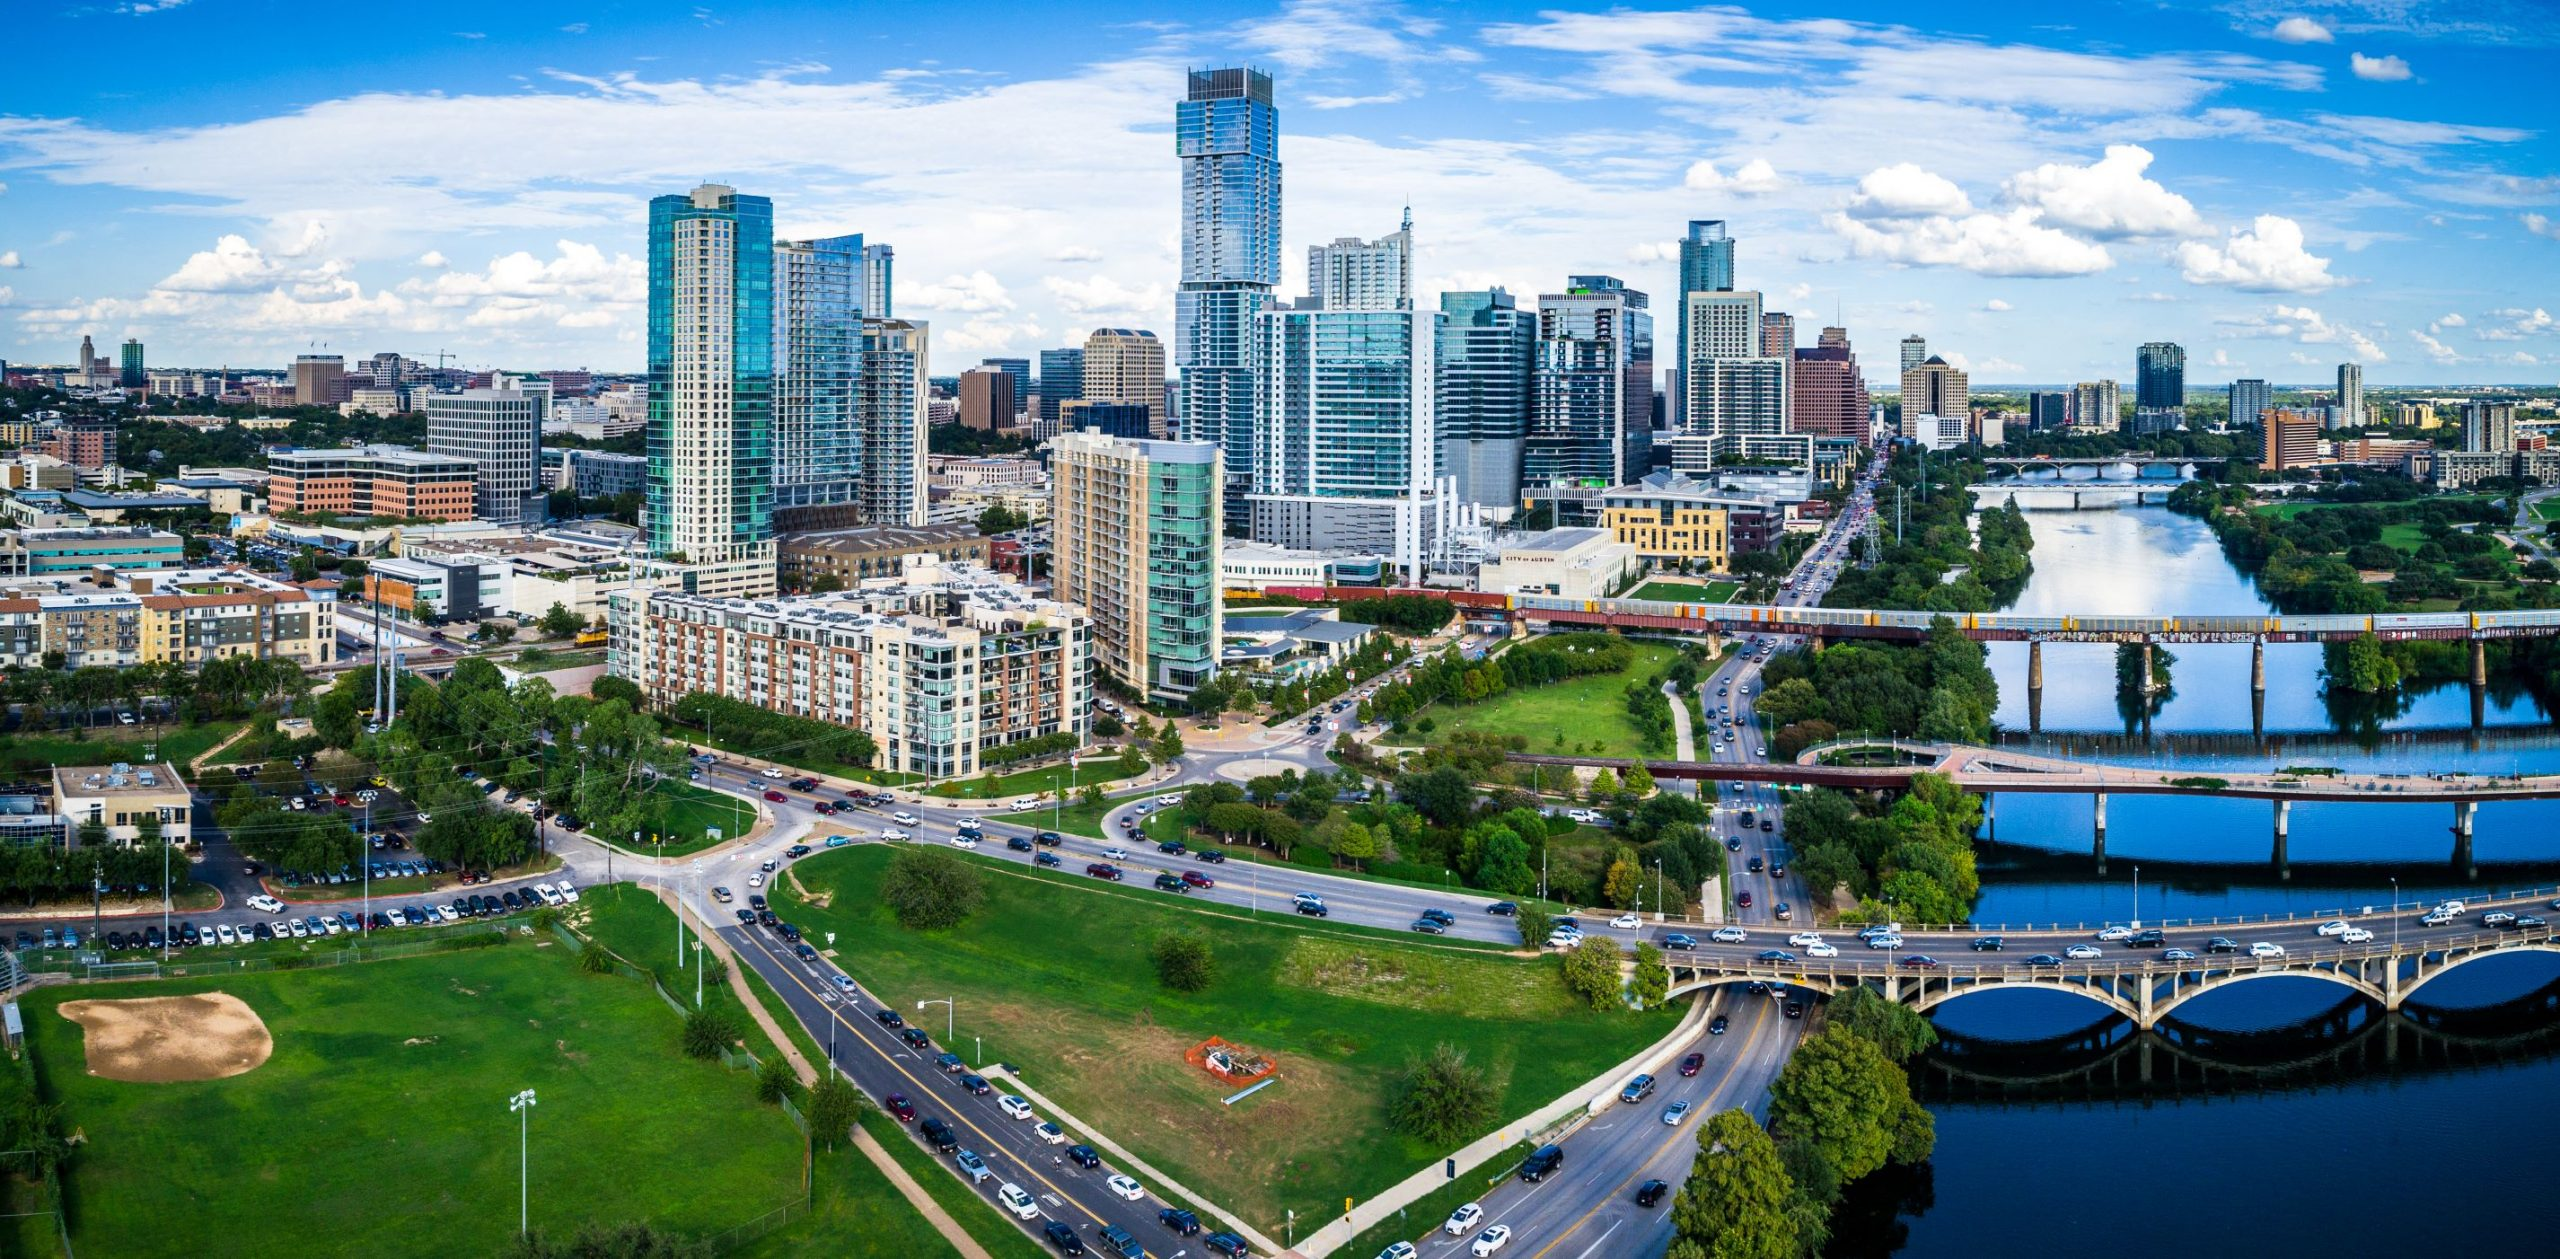 daytime view of downtown austin